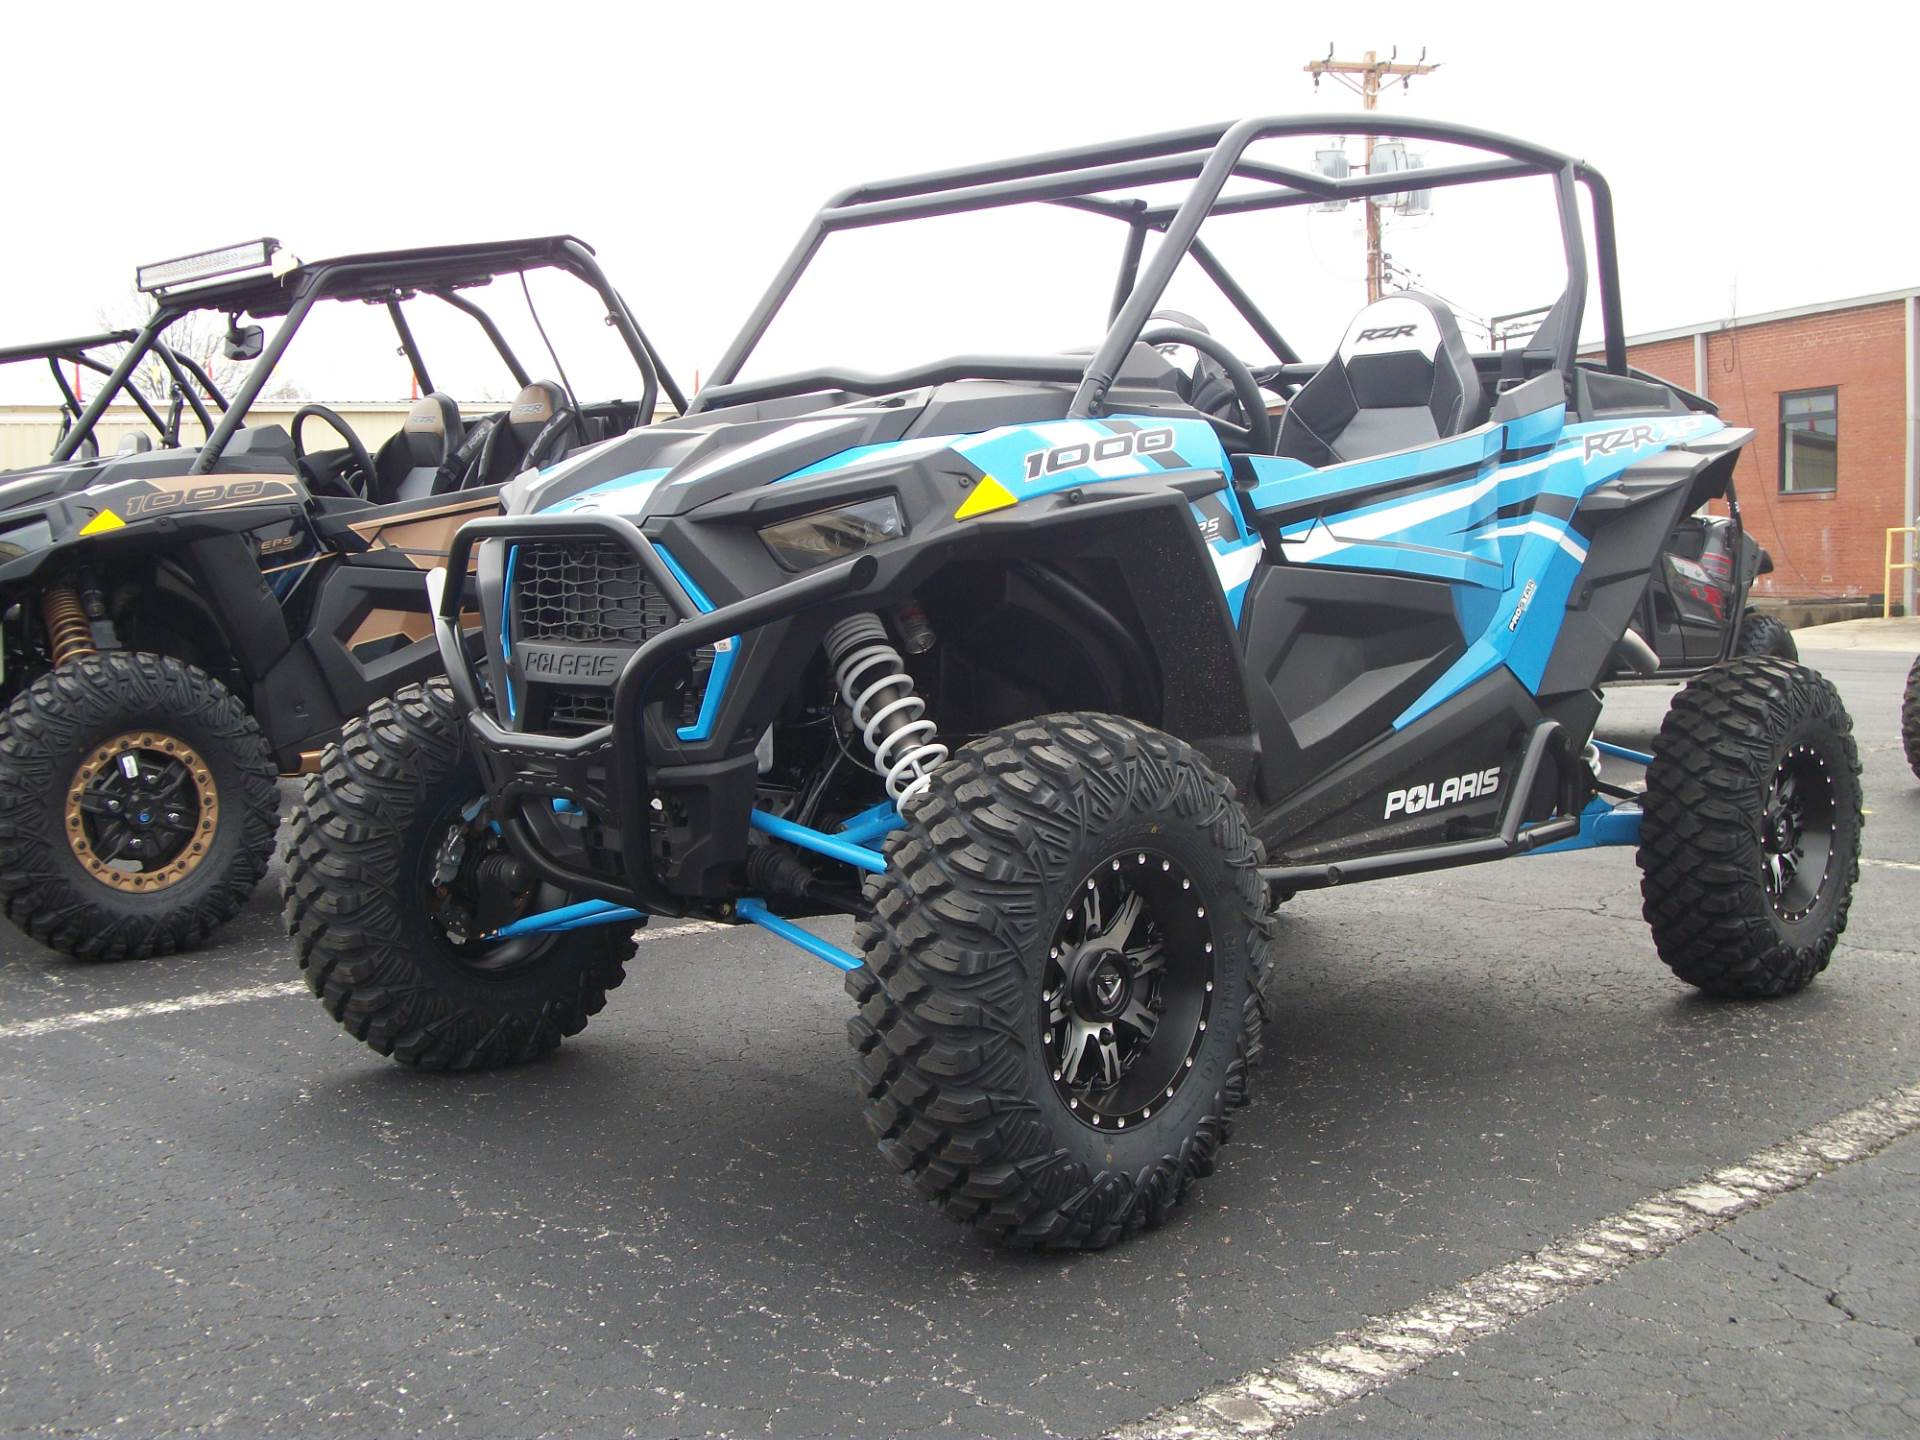 2019 Polaris RZR XP 1000 in Statesville, North Carolina - Photo 1